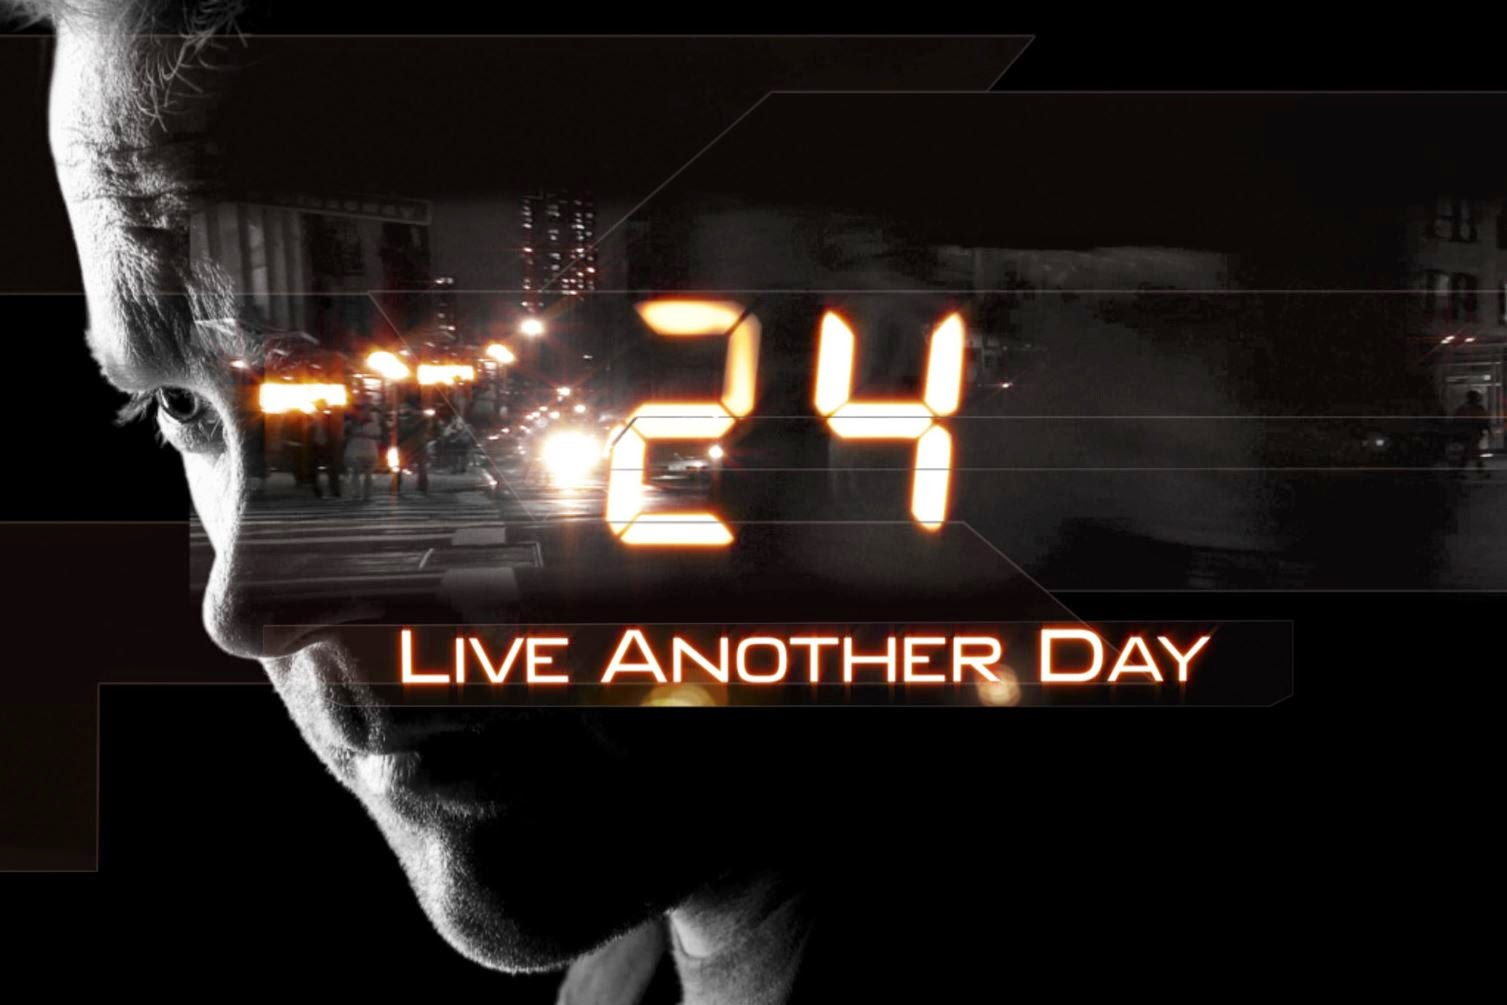 Fox's 24: Live Another Day limited series debuts strong